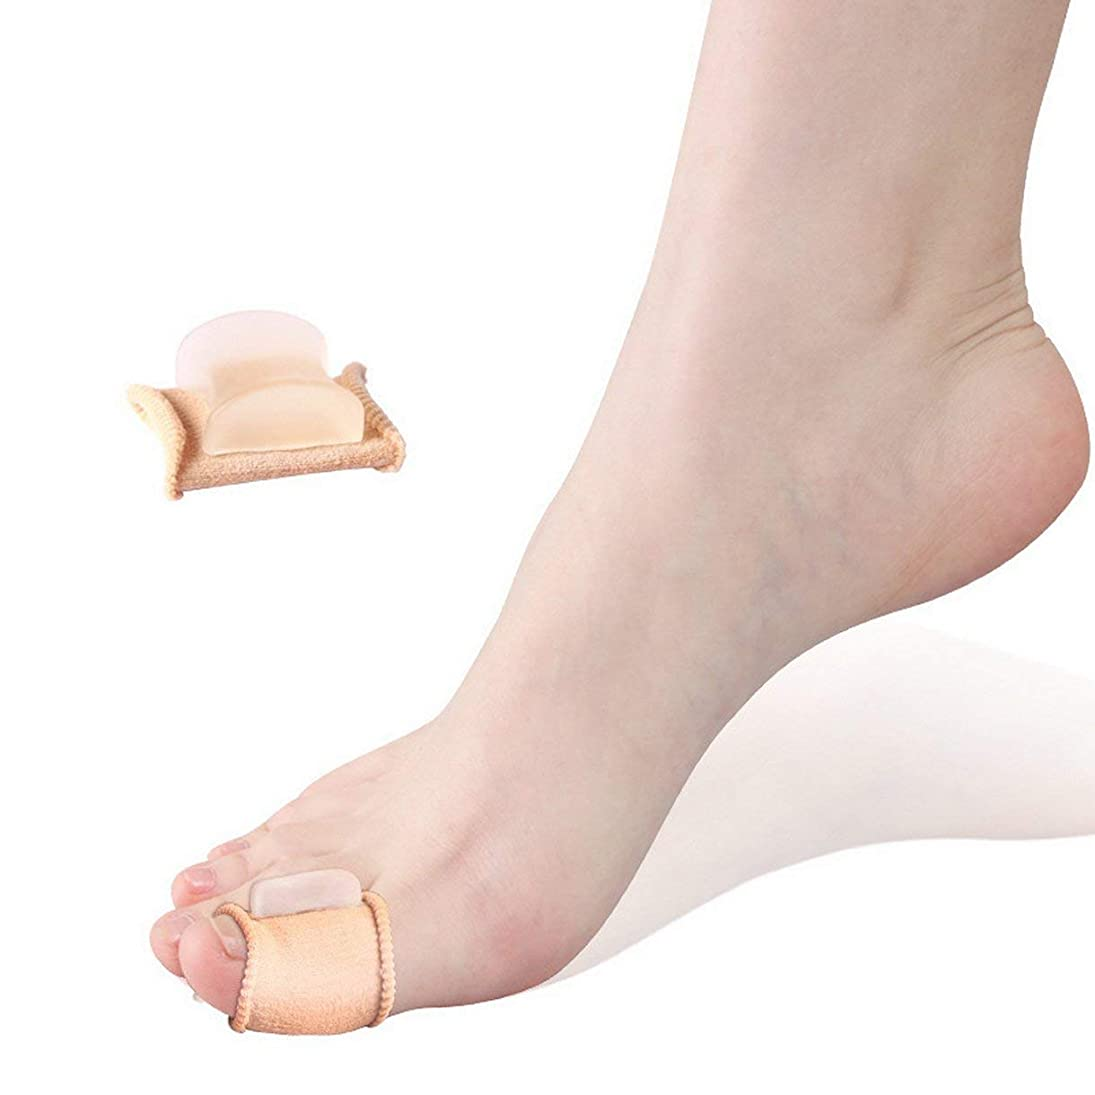 動作上下するムスタチオFoot Care Hallux Valgus Silicone Toe Separation Protector Hallux Valgus Guard Cushion Bunion Toe Separator